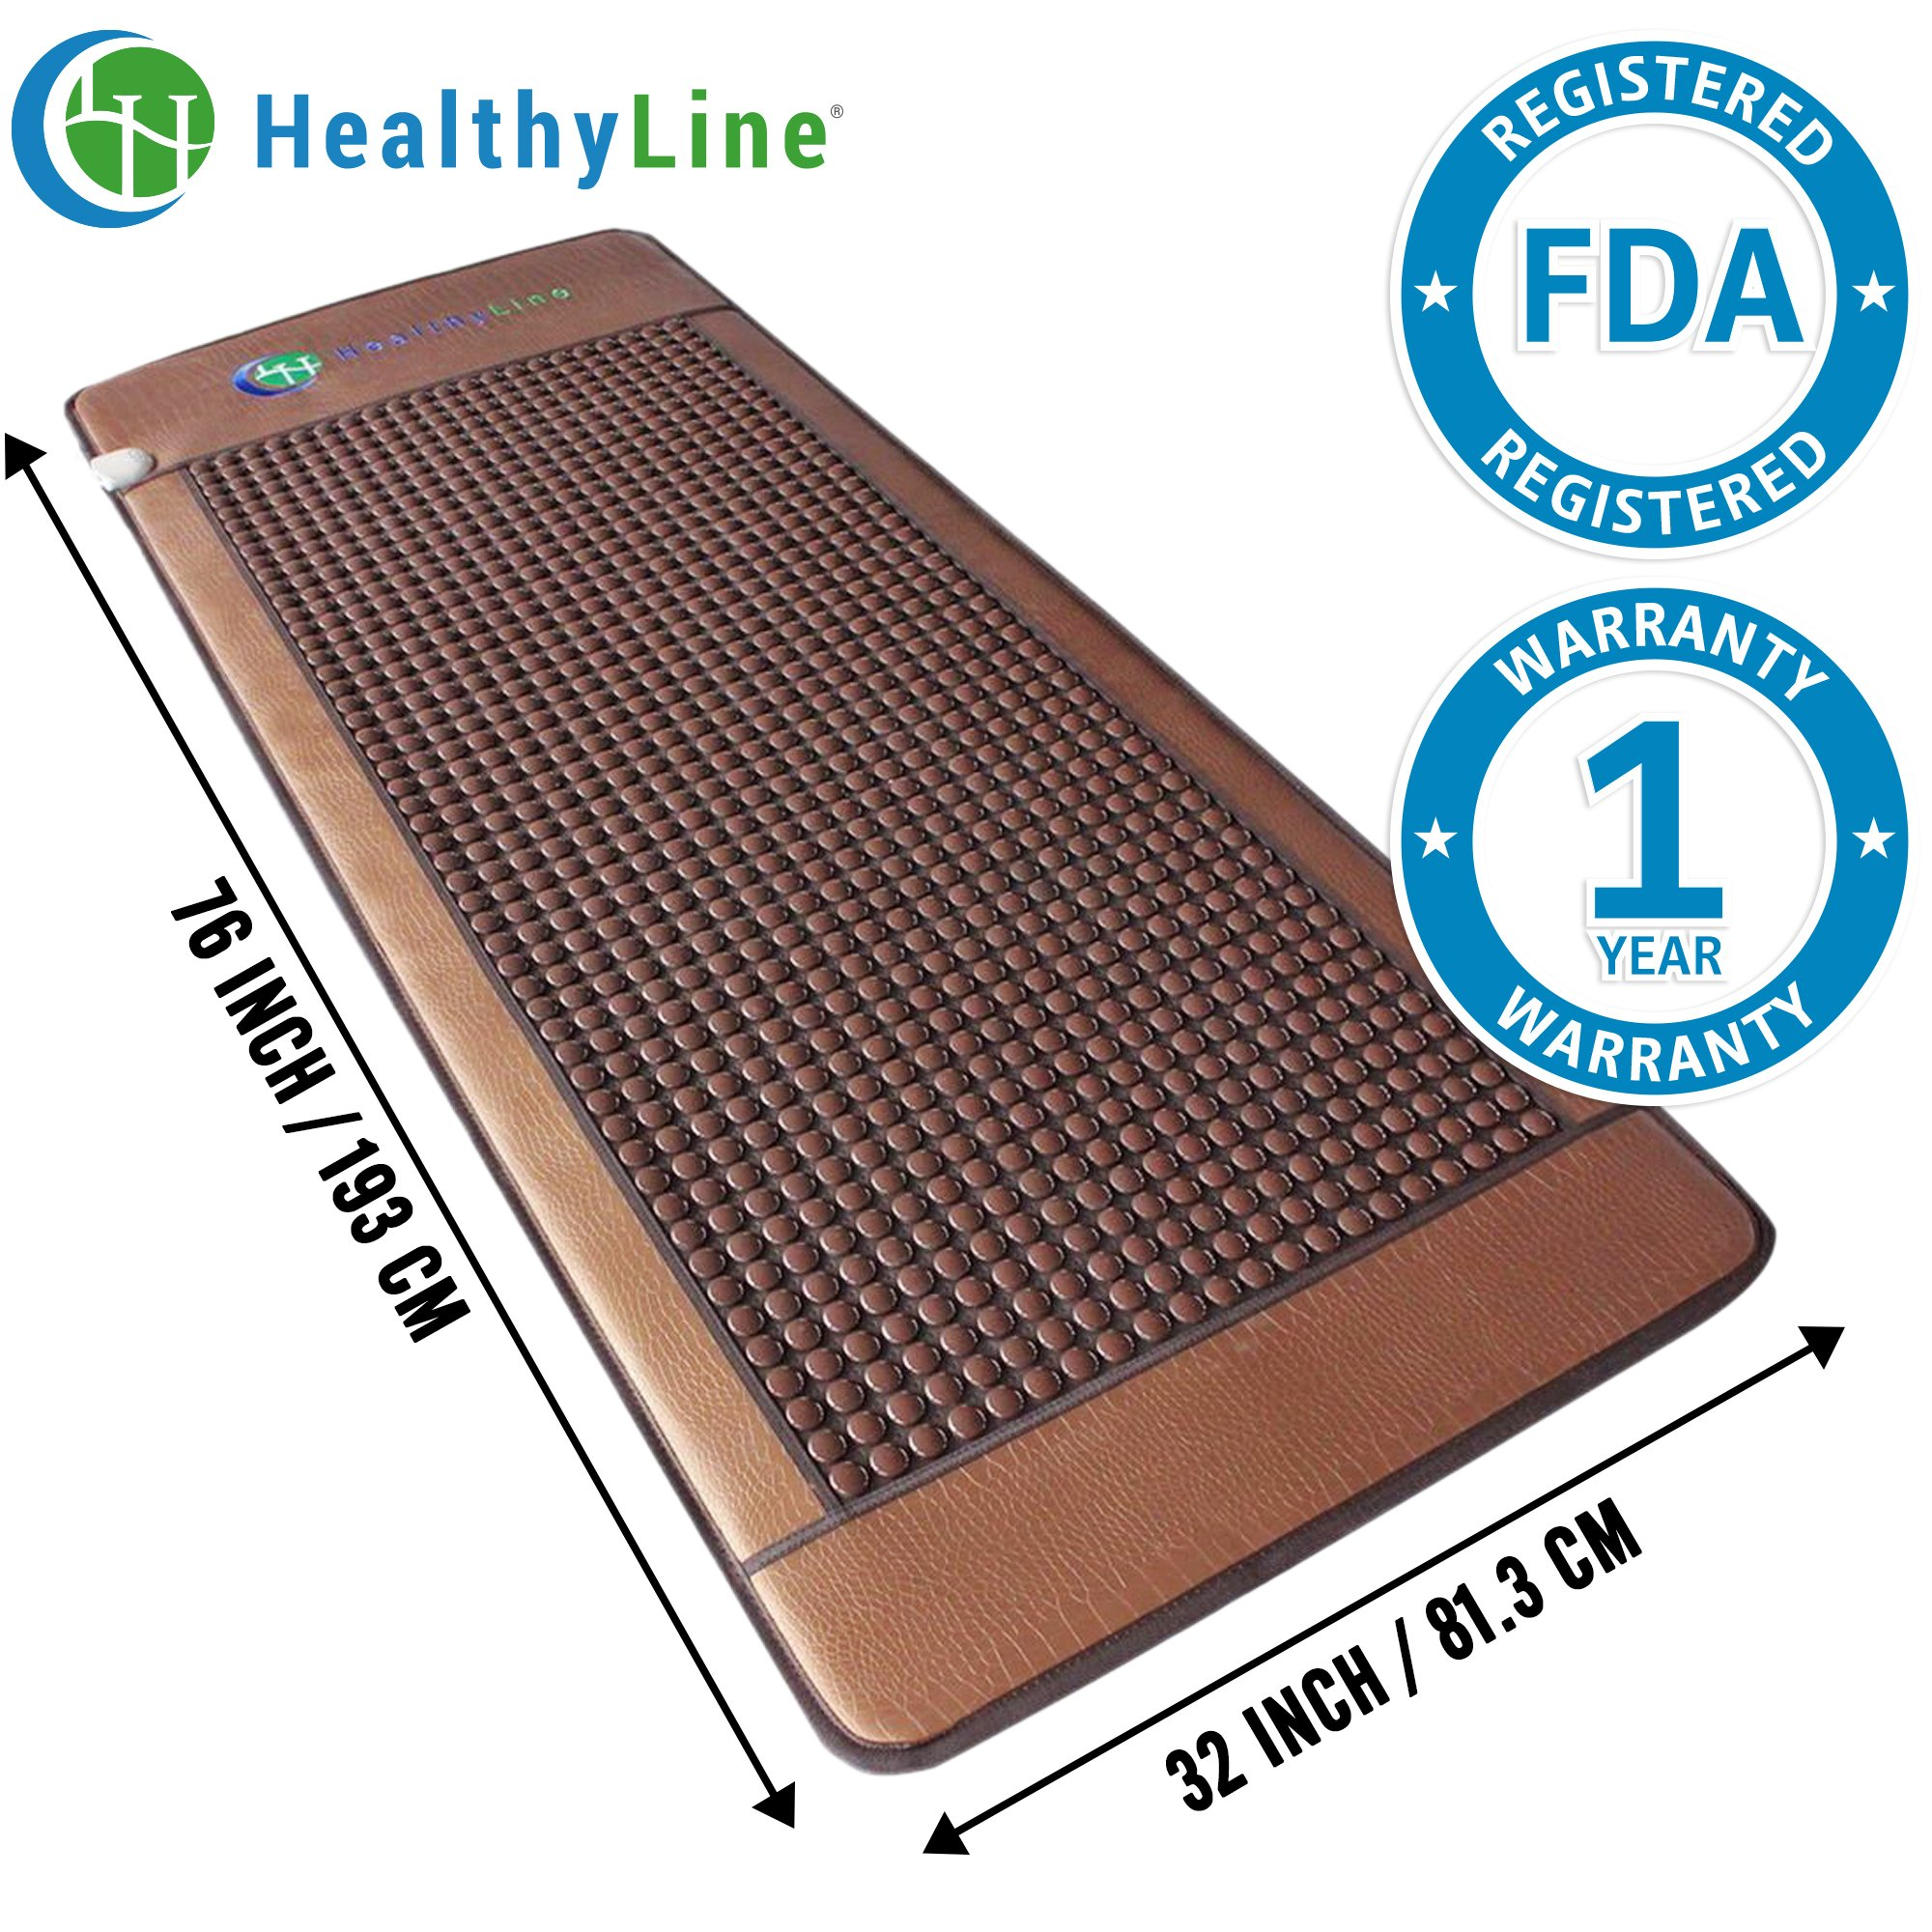 HealthyLine Far Infrared Heating Mat|Natural Tourmaline Massage Table Healing Pad 76'' x 32'' |​​​​​ ​Heated Negative Ions (XL & Firm) | Relieve Pain, Stress & Insomnia | FDA Registered